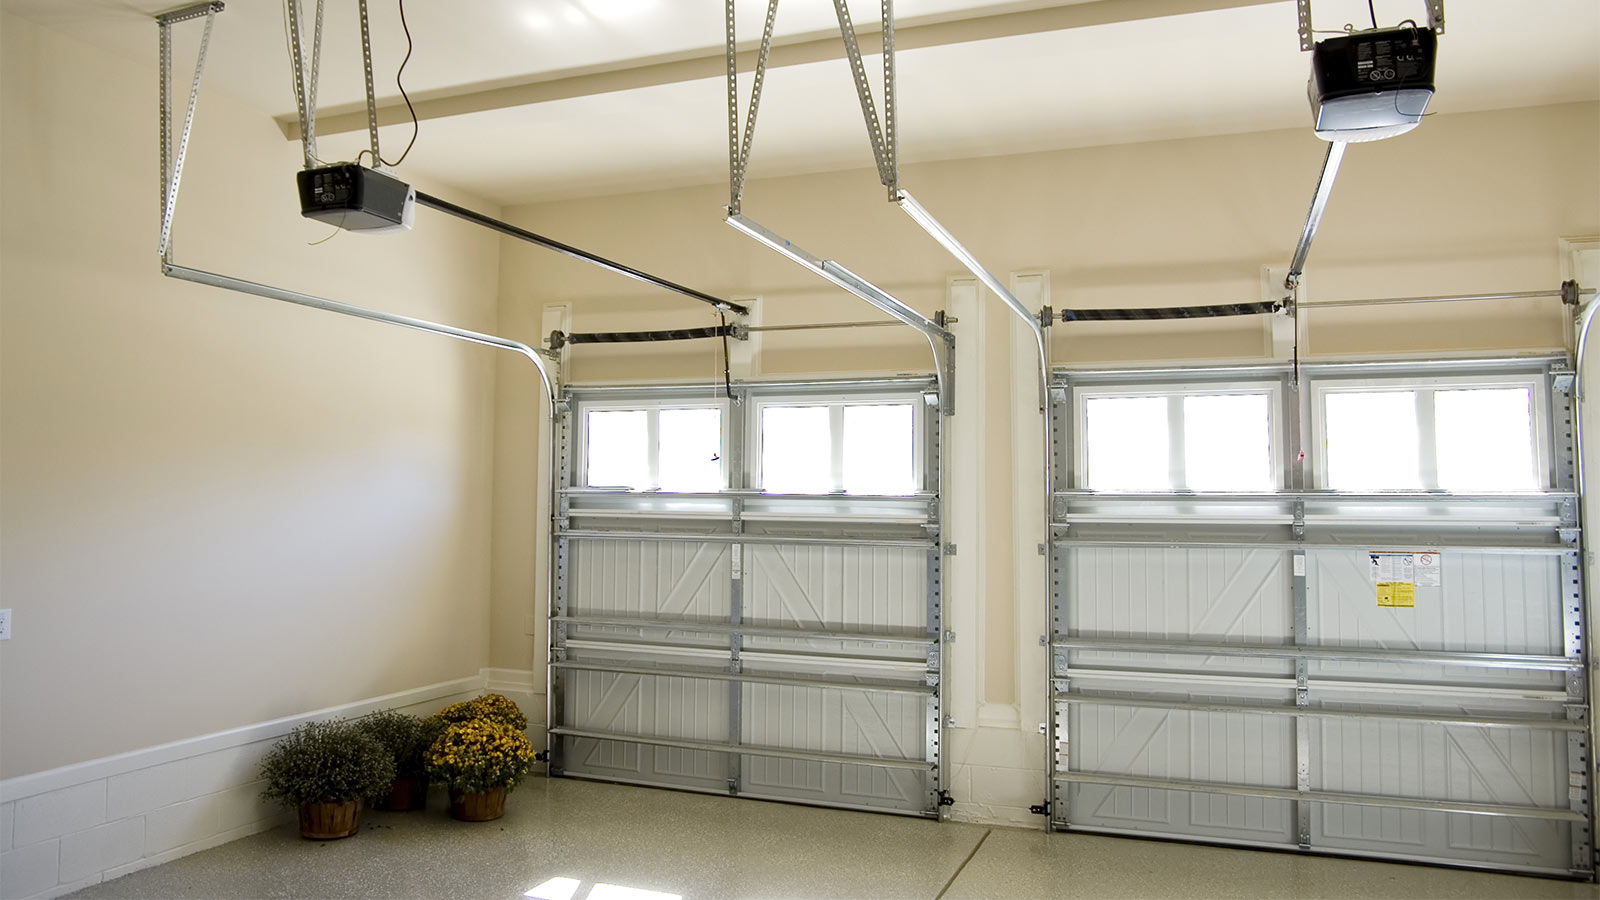 Sectional Garage Doors from Window Roller Shutters Croydon suppliers.